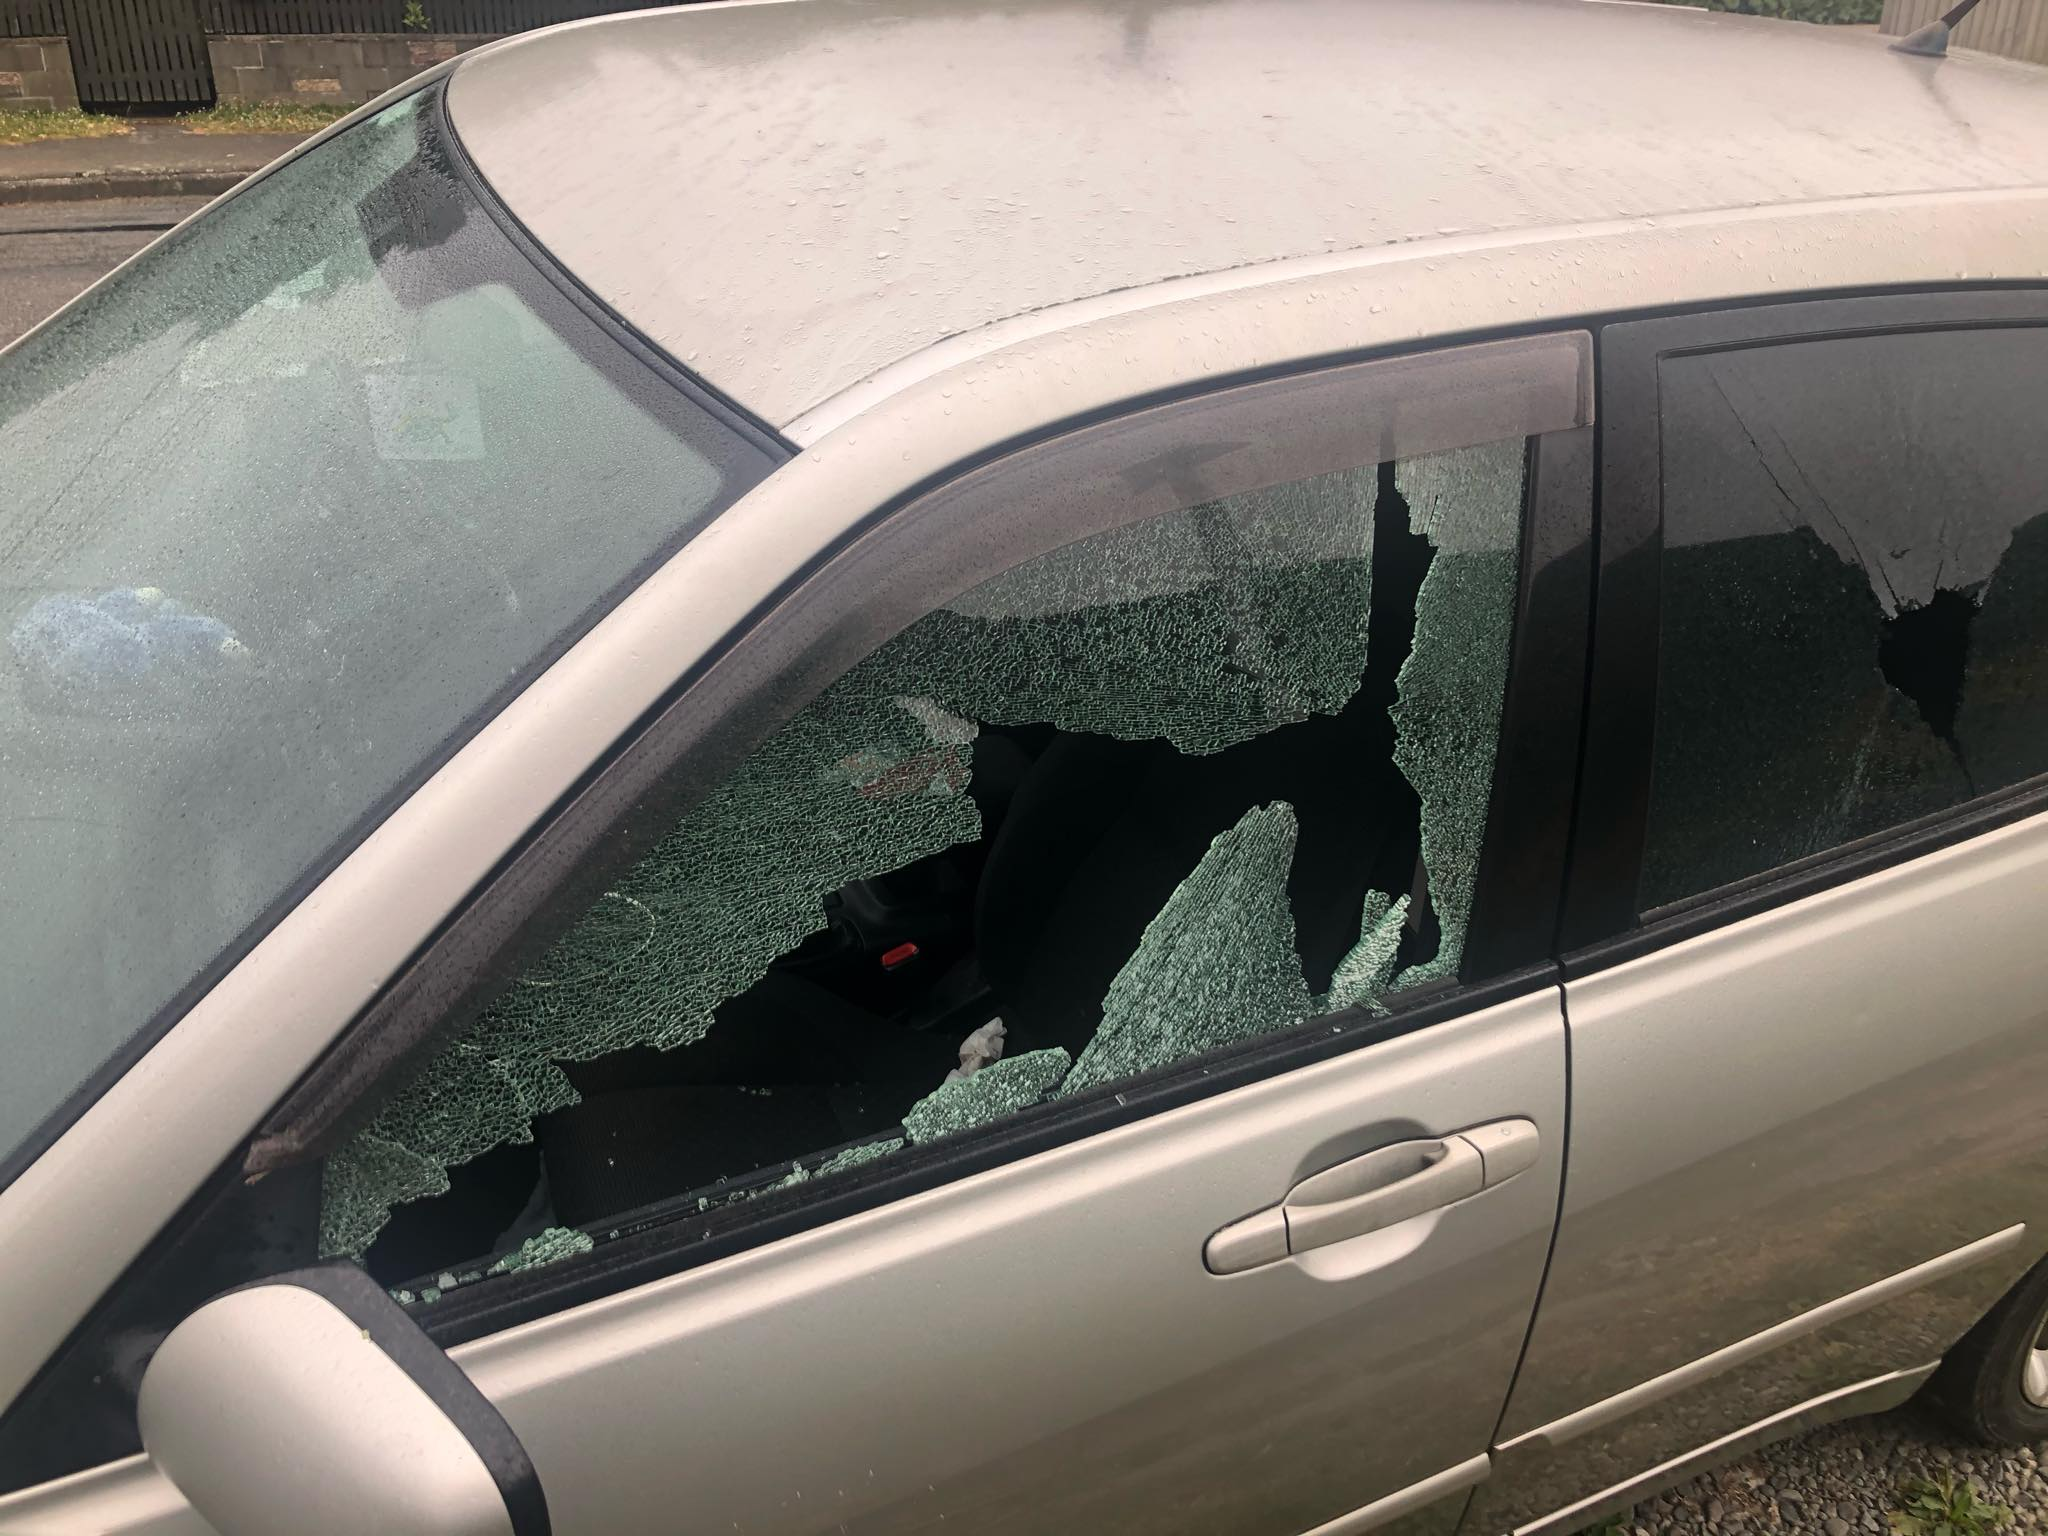 Warden St resident Lilly Van't Wout was shocked to discover almost every window in her car had...